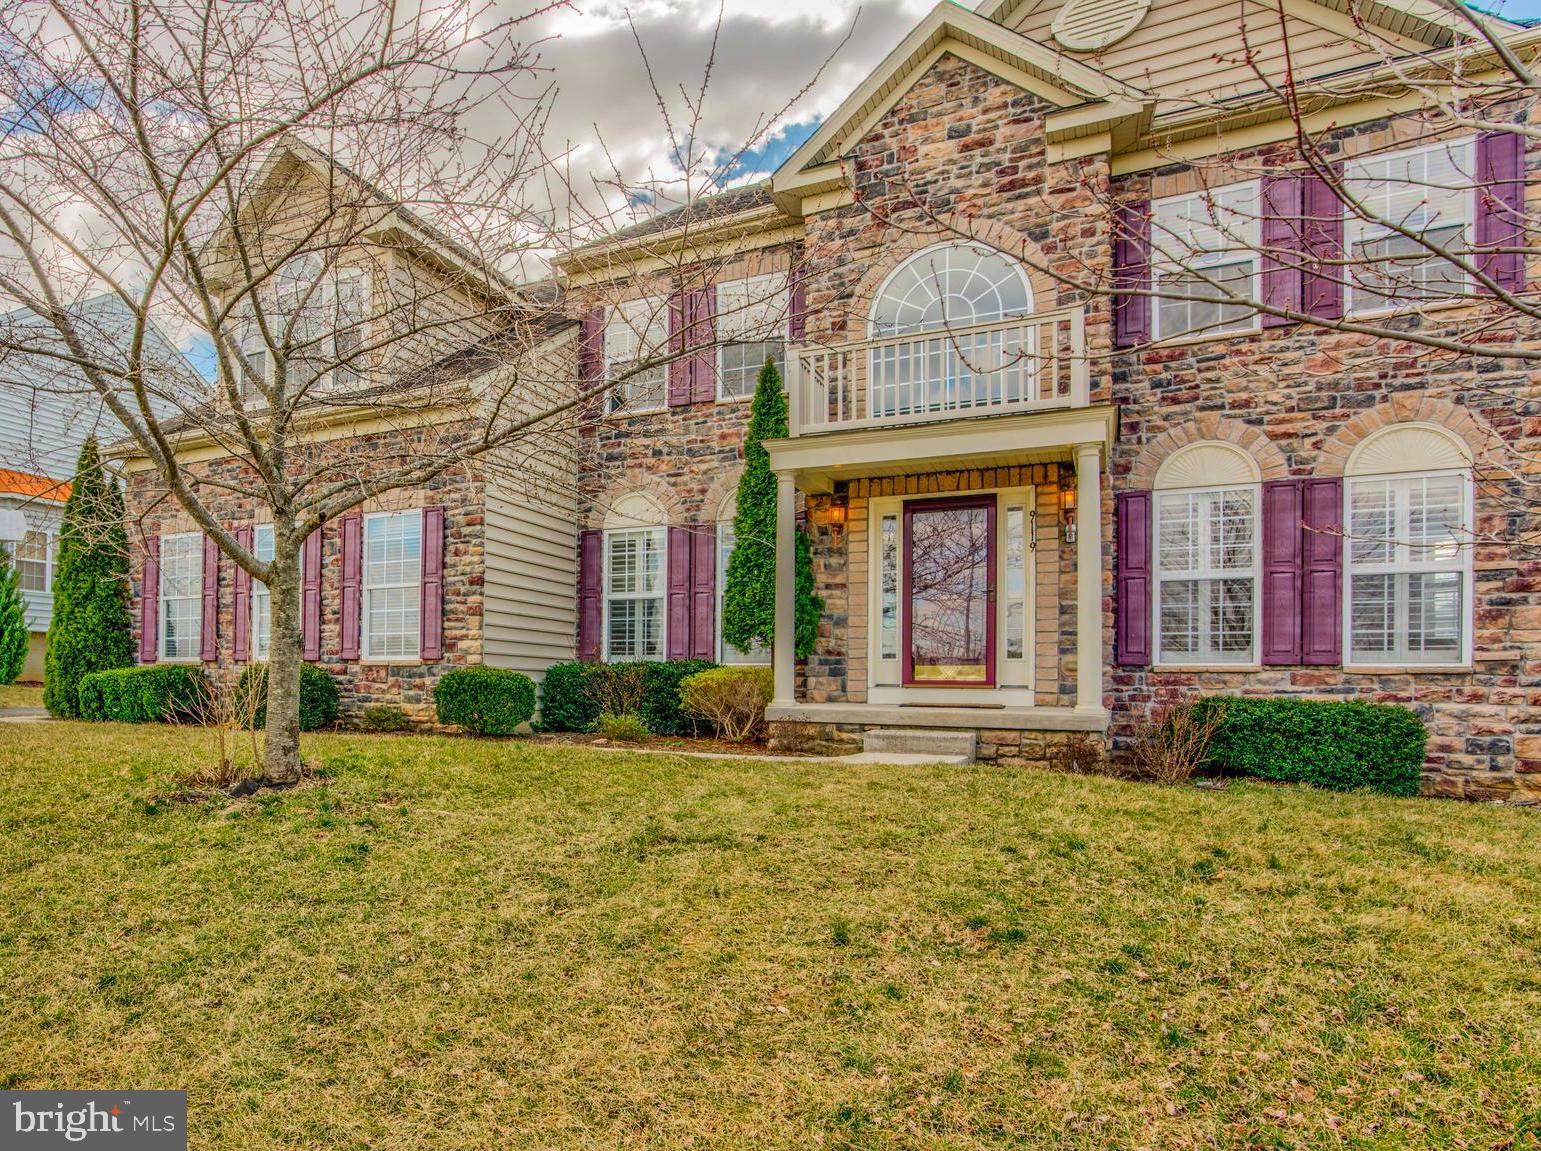 9119 REXIS AVENUE, PERRY HALL, MD 21128